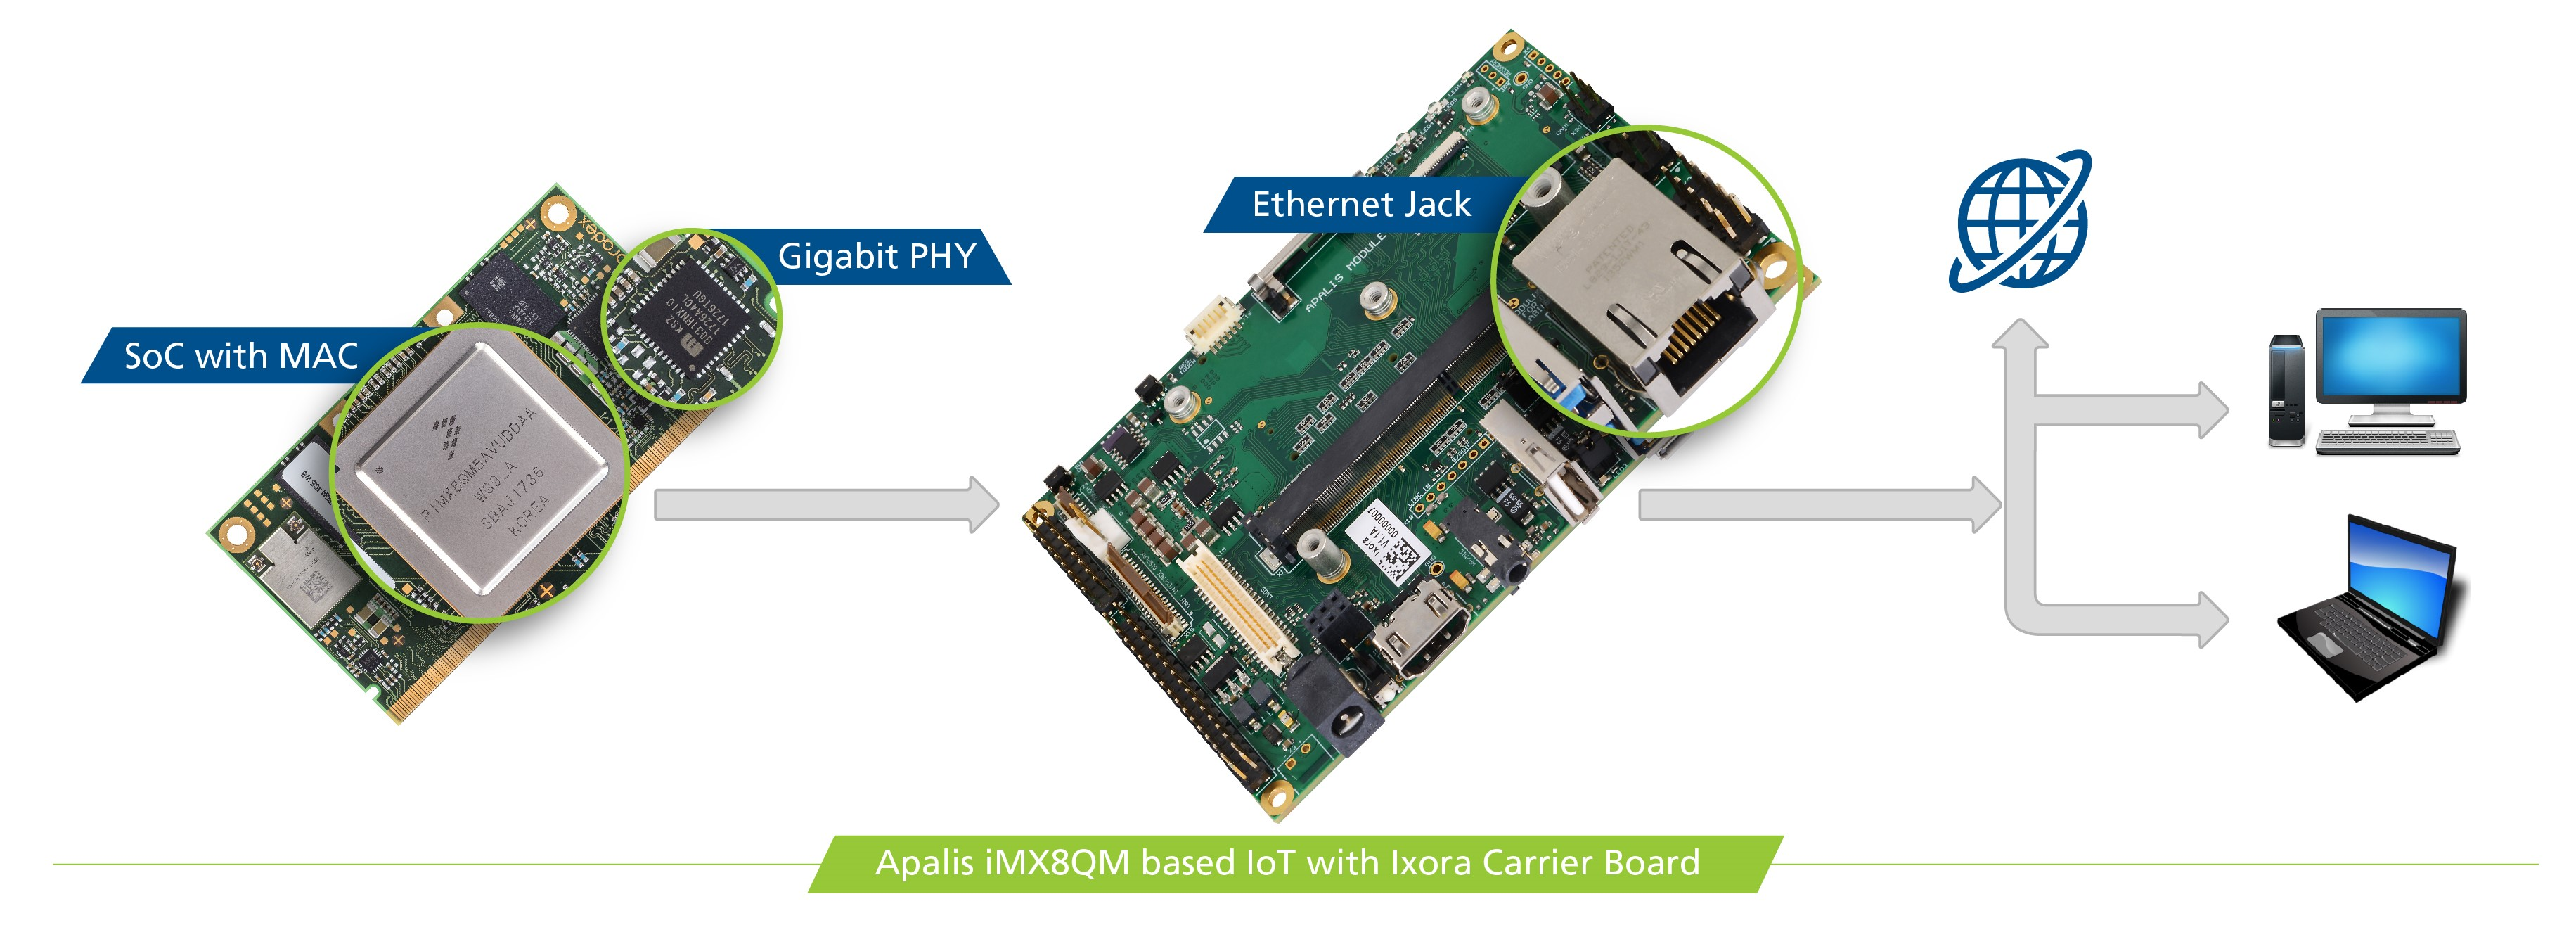 Apalis iMX8QM based IoT with Ixora Carrier Board